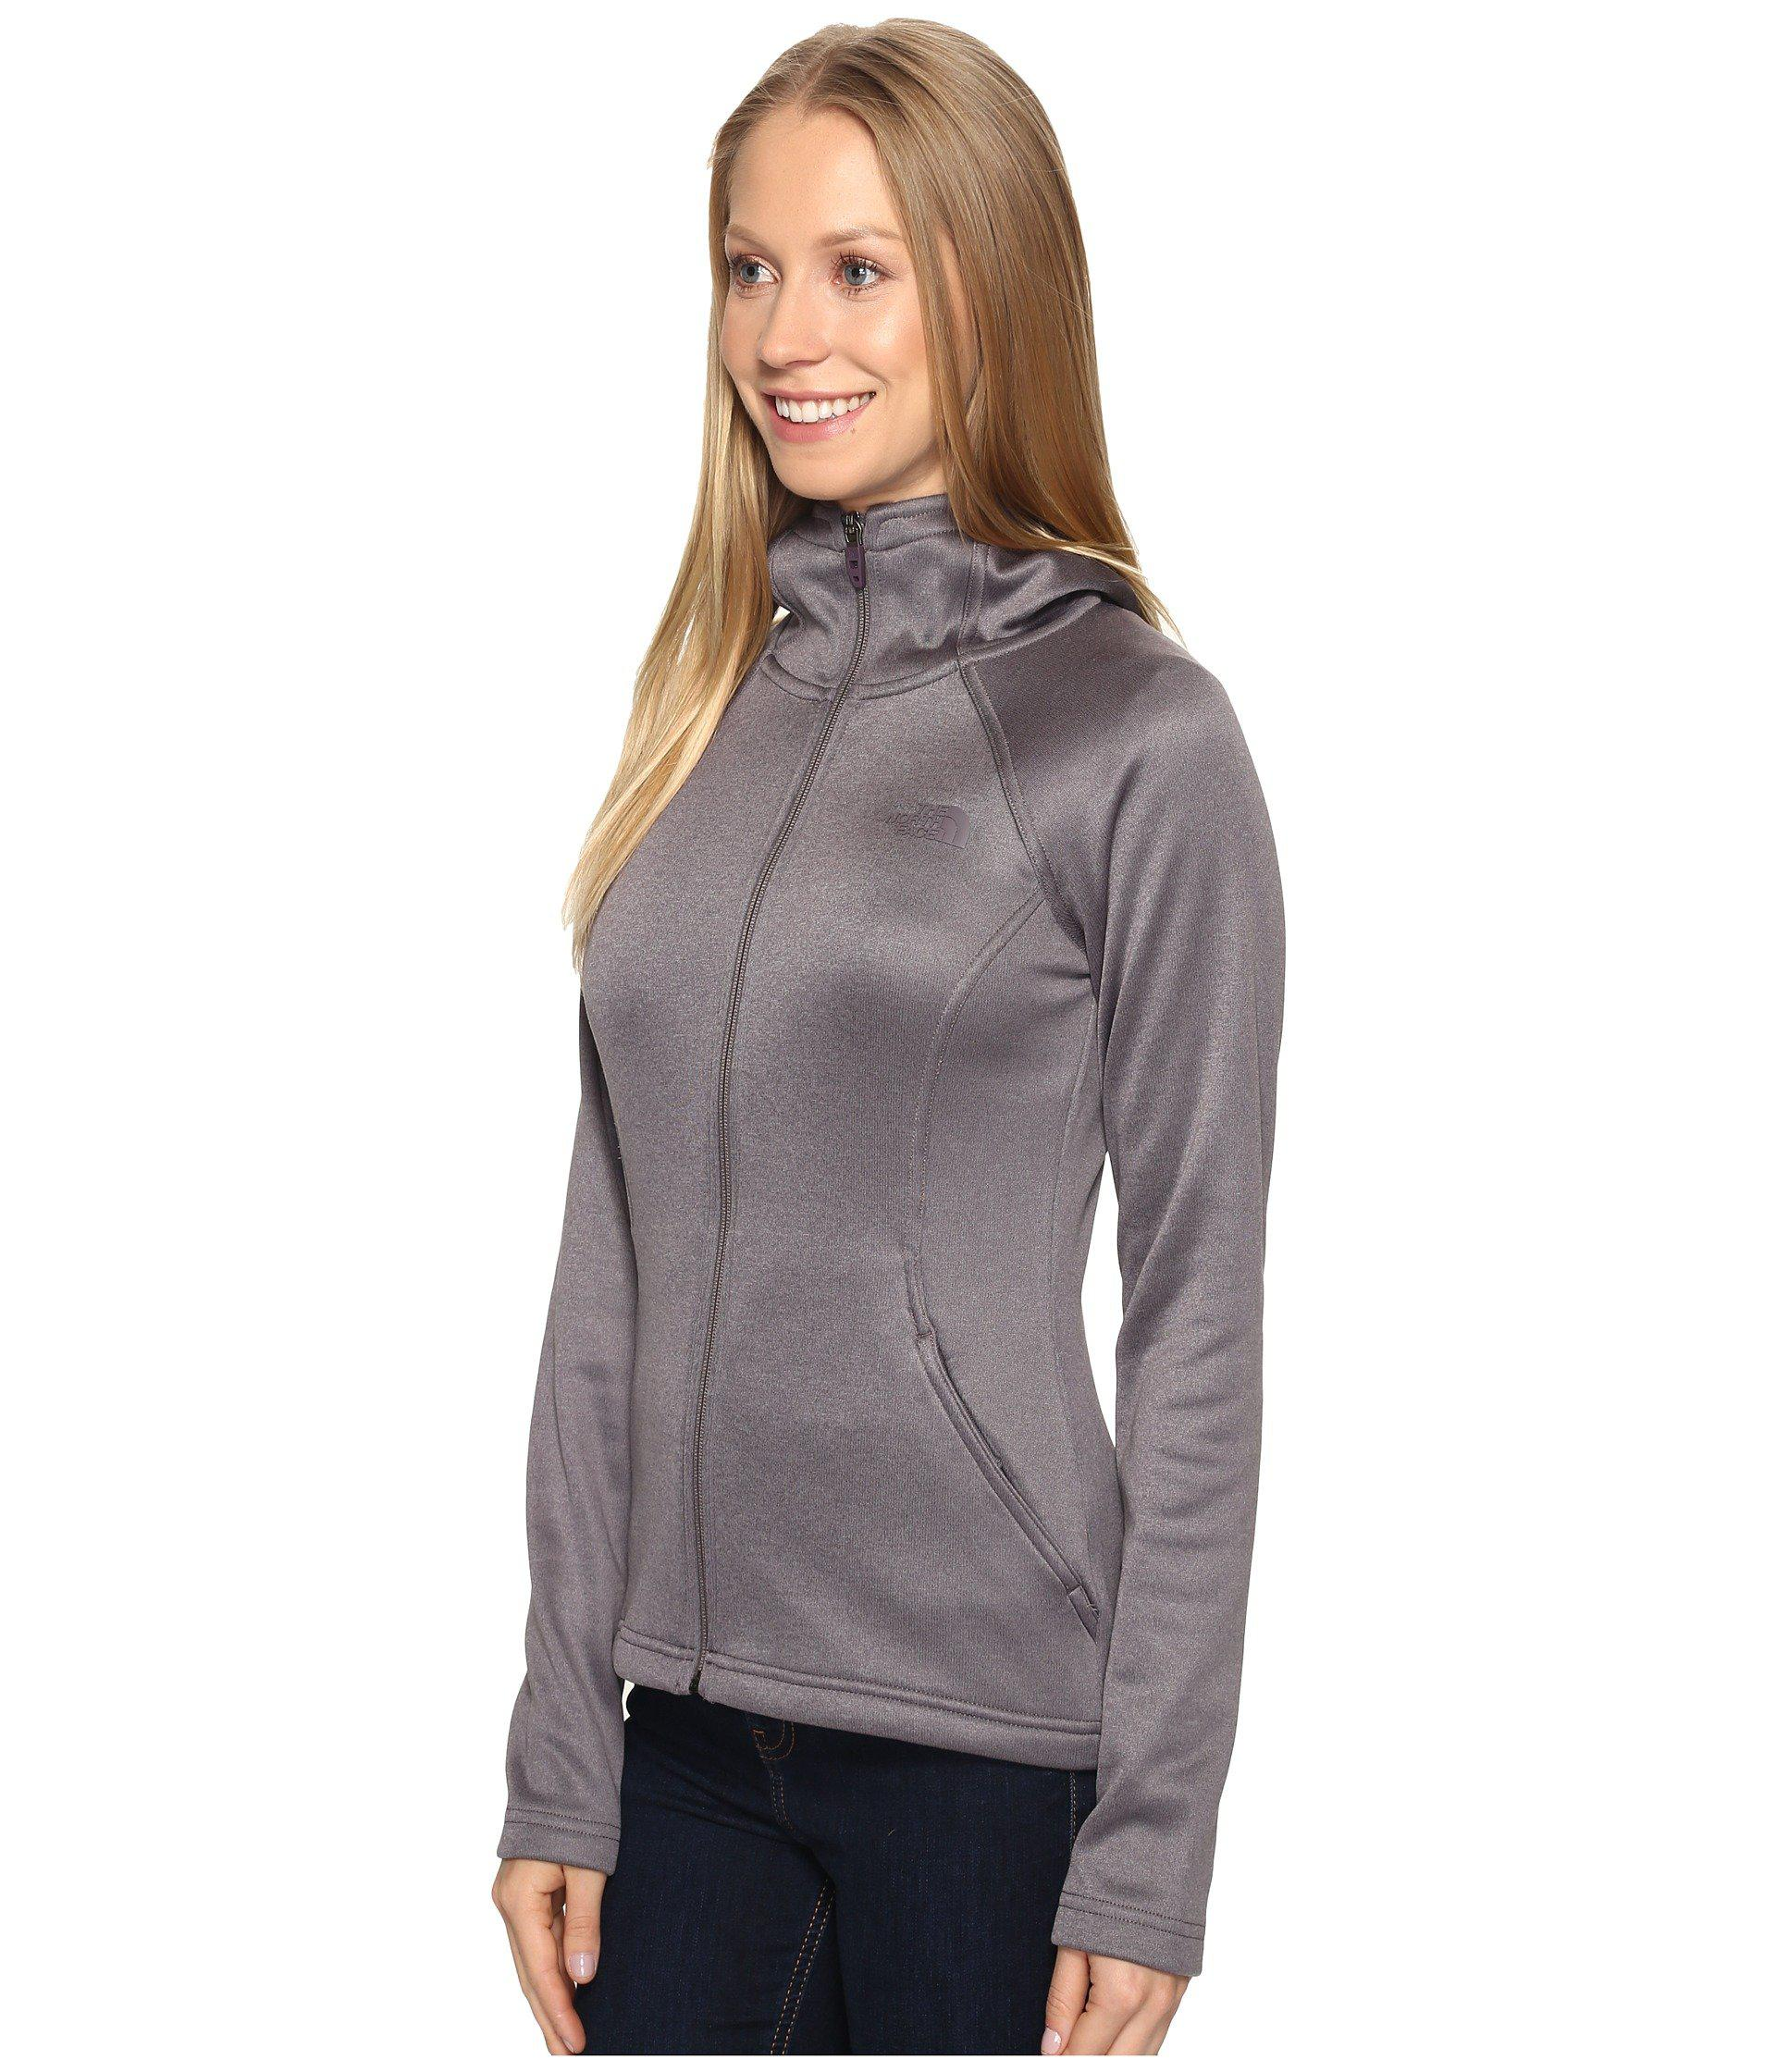 a4b2c107059 Lyst - The North Face Agave Hoodie in Gray - Save 29%